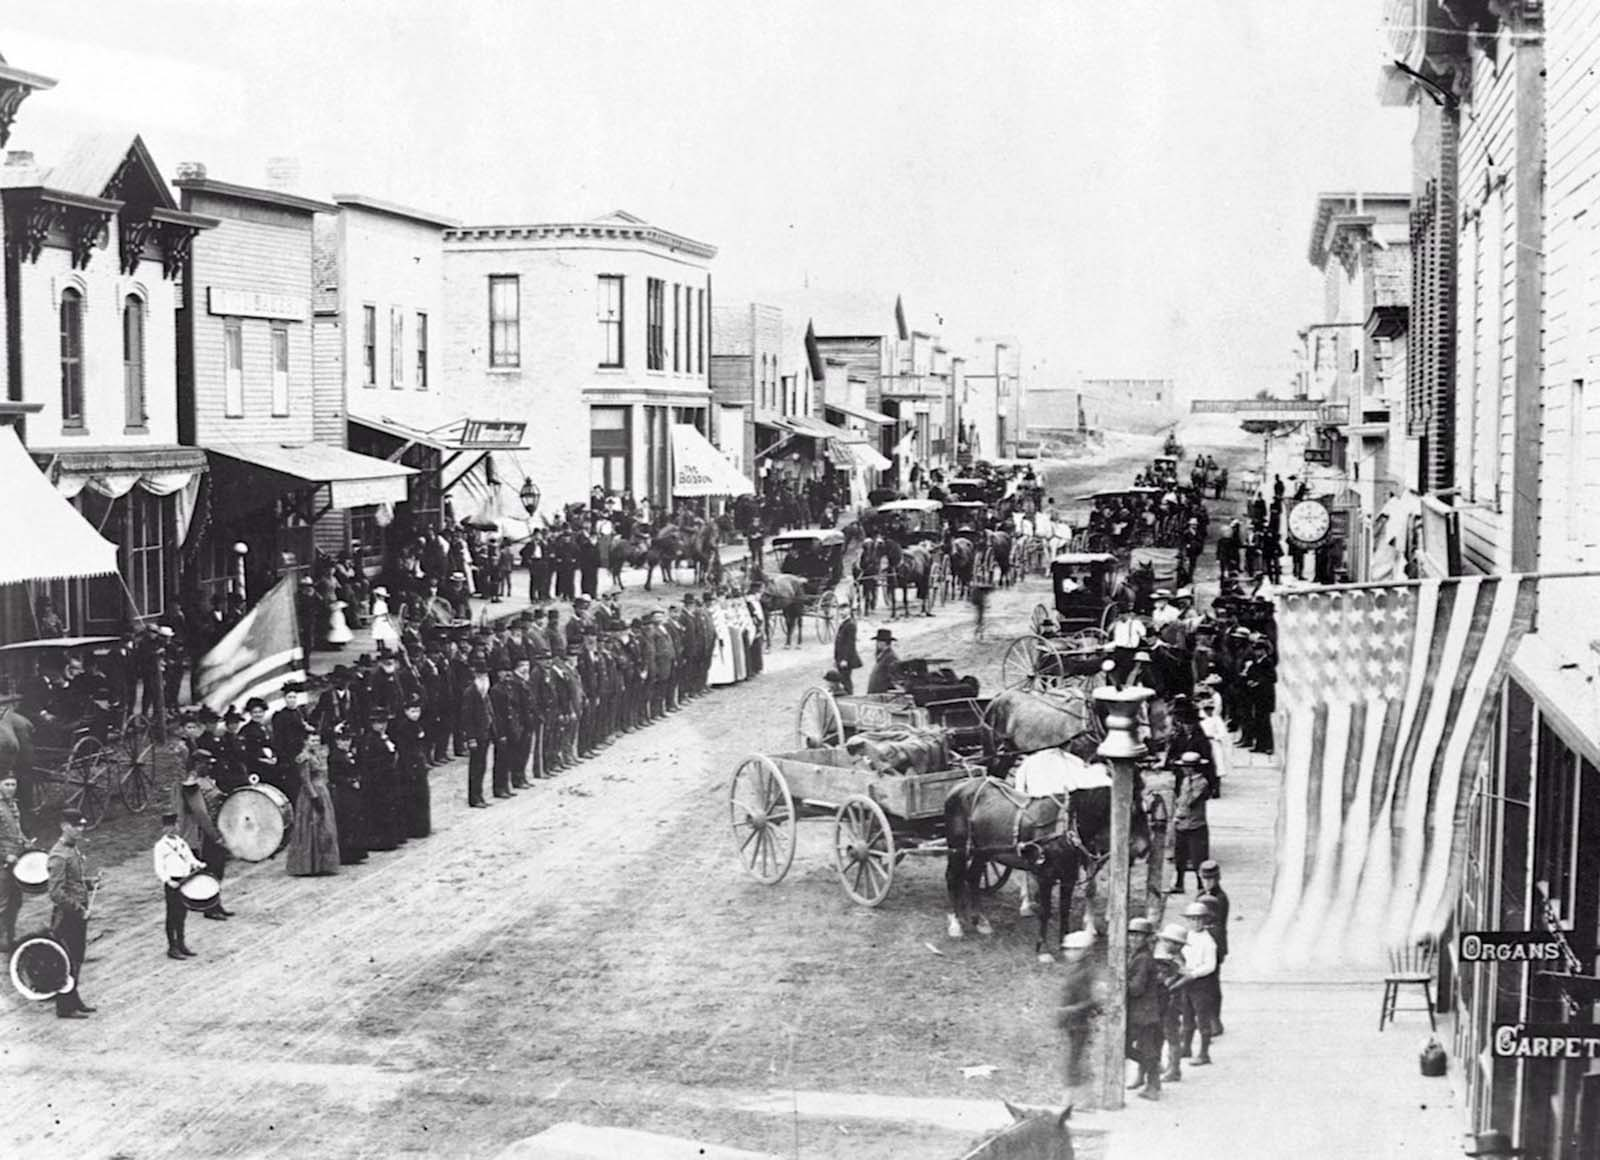 Civil War veterans on Fourth of July, or Decoration Day, on review on the main street of Ortonville, Minnesota. 1880.